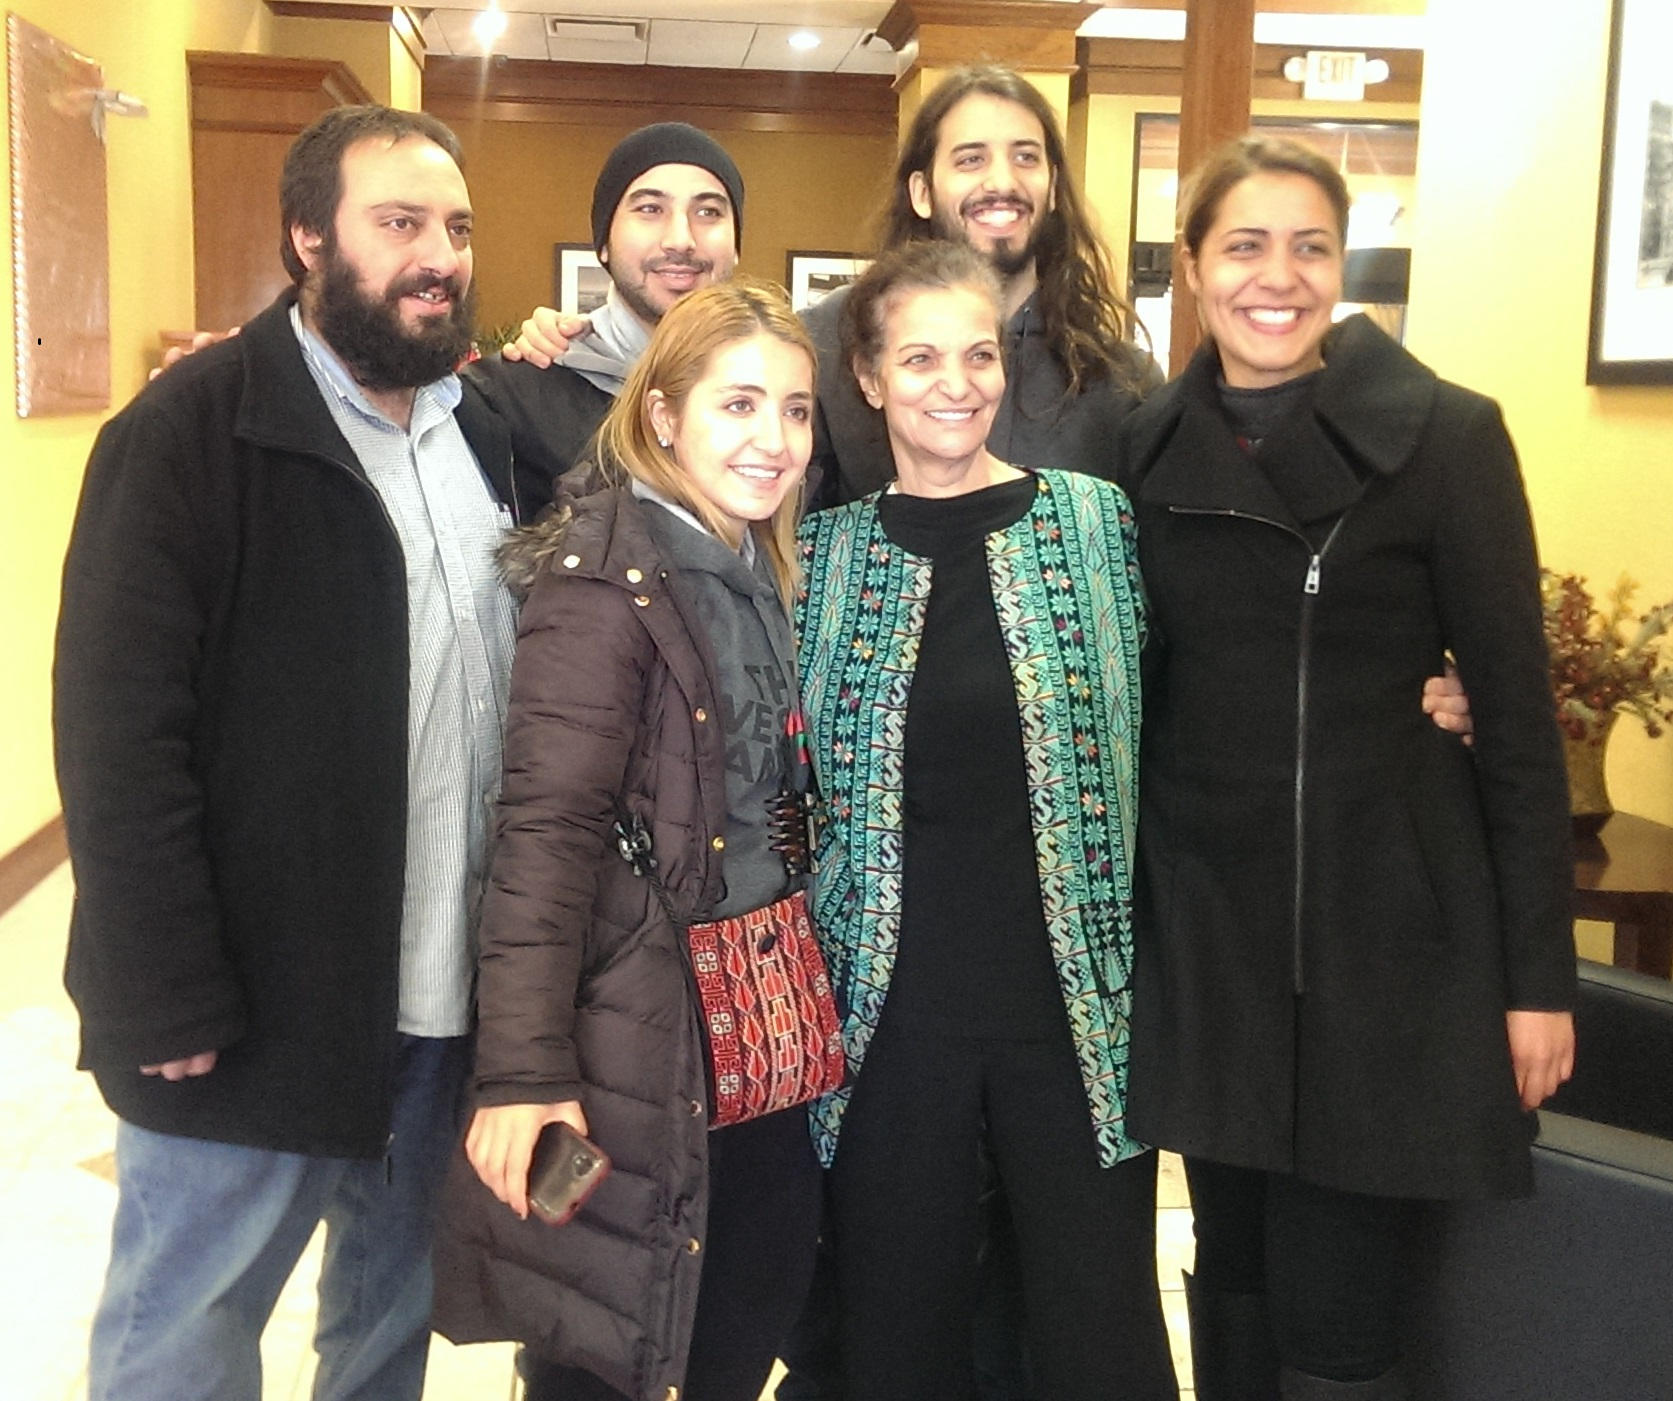 Out of jail! Rasmea is with her family and returning home to Chicago.